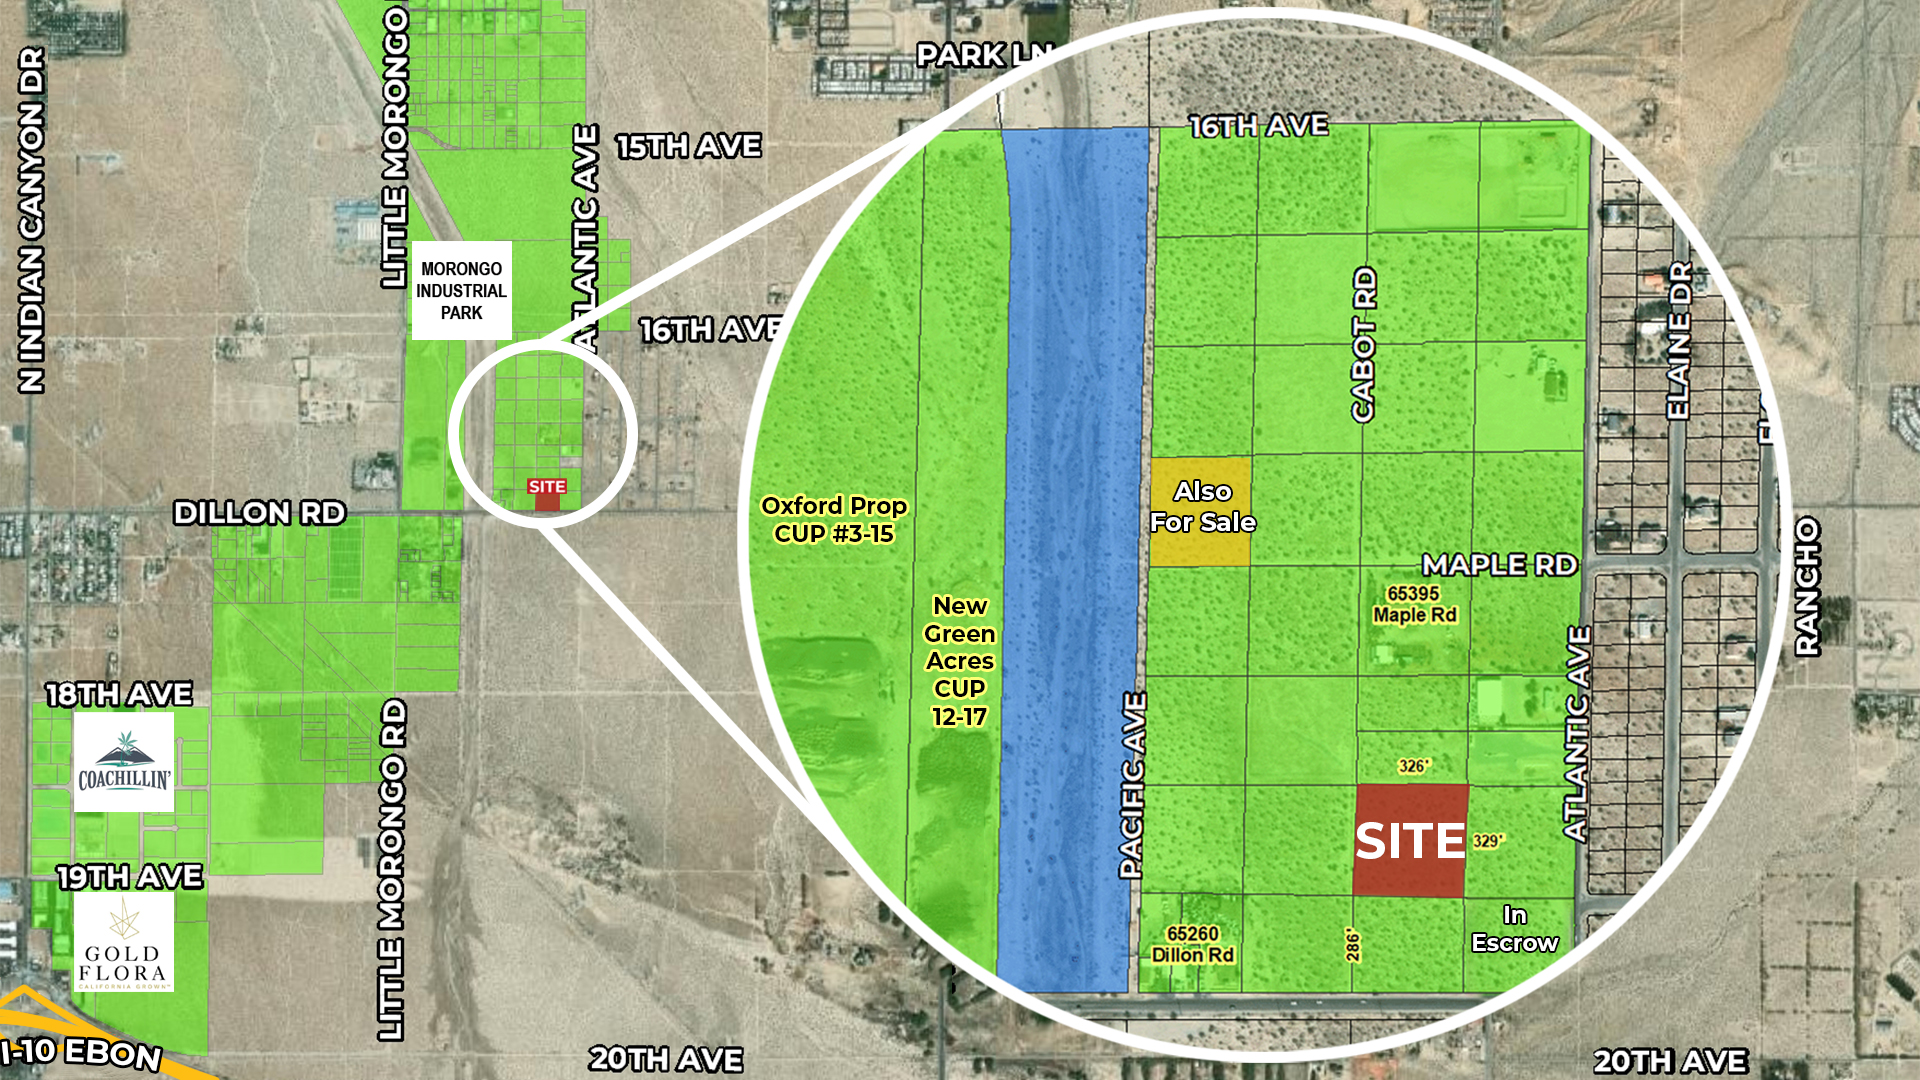 2.48 AC E Cabot Rd, DHS Zoomed Aerial Map Web